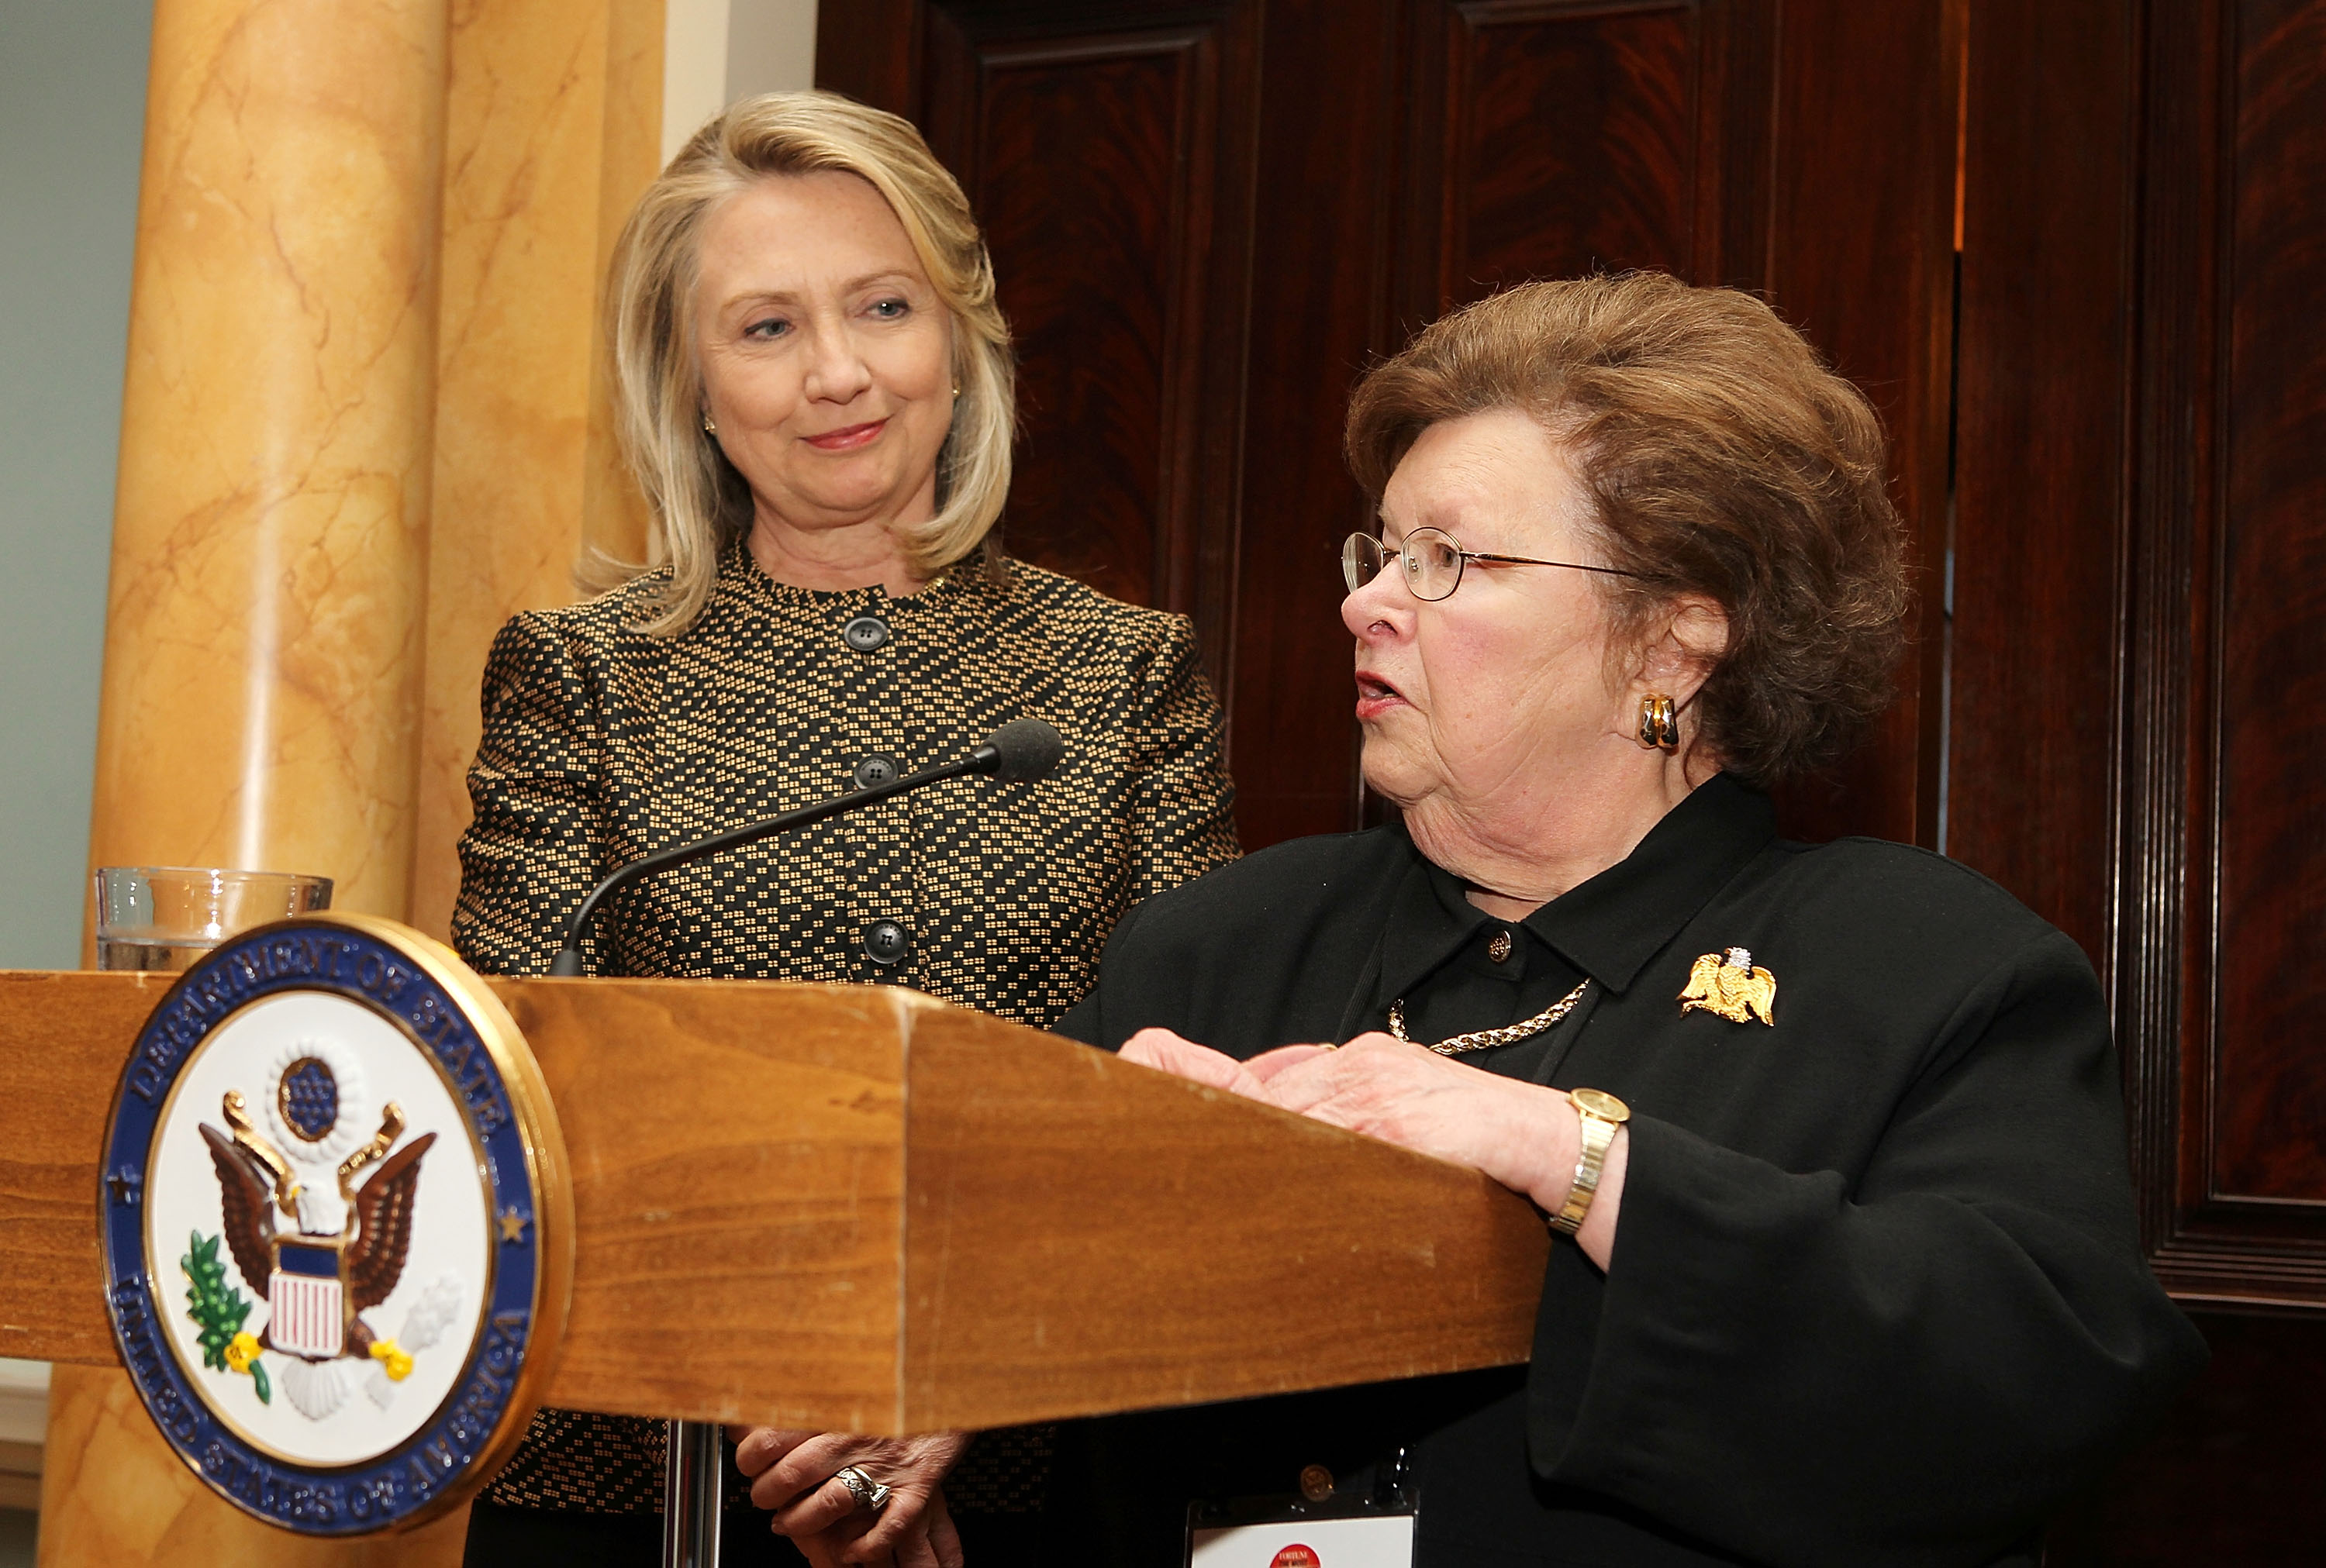 U.S. Secretary of State Hillary Clinton and Sen. Barbara Mikulski (D-MD) make a few remarks at FORTUNE Most Powerful Women Dinner at U.S Department Of State's Benjamin Franklin Diplomatic Room on April 30, 2012 in Washington, D.C.